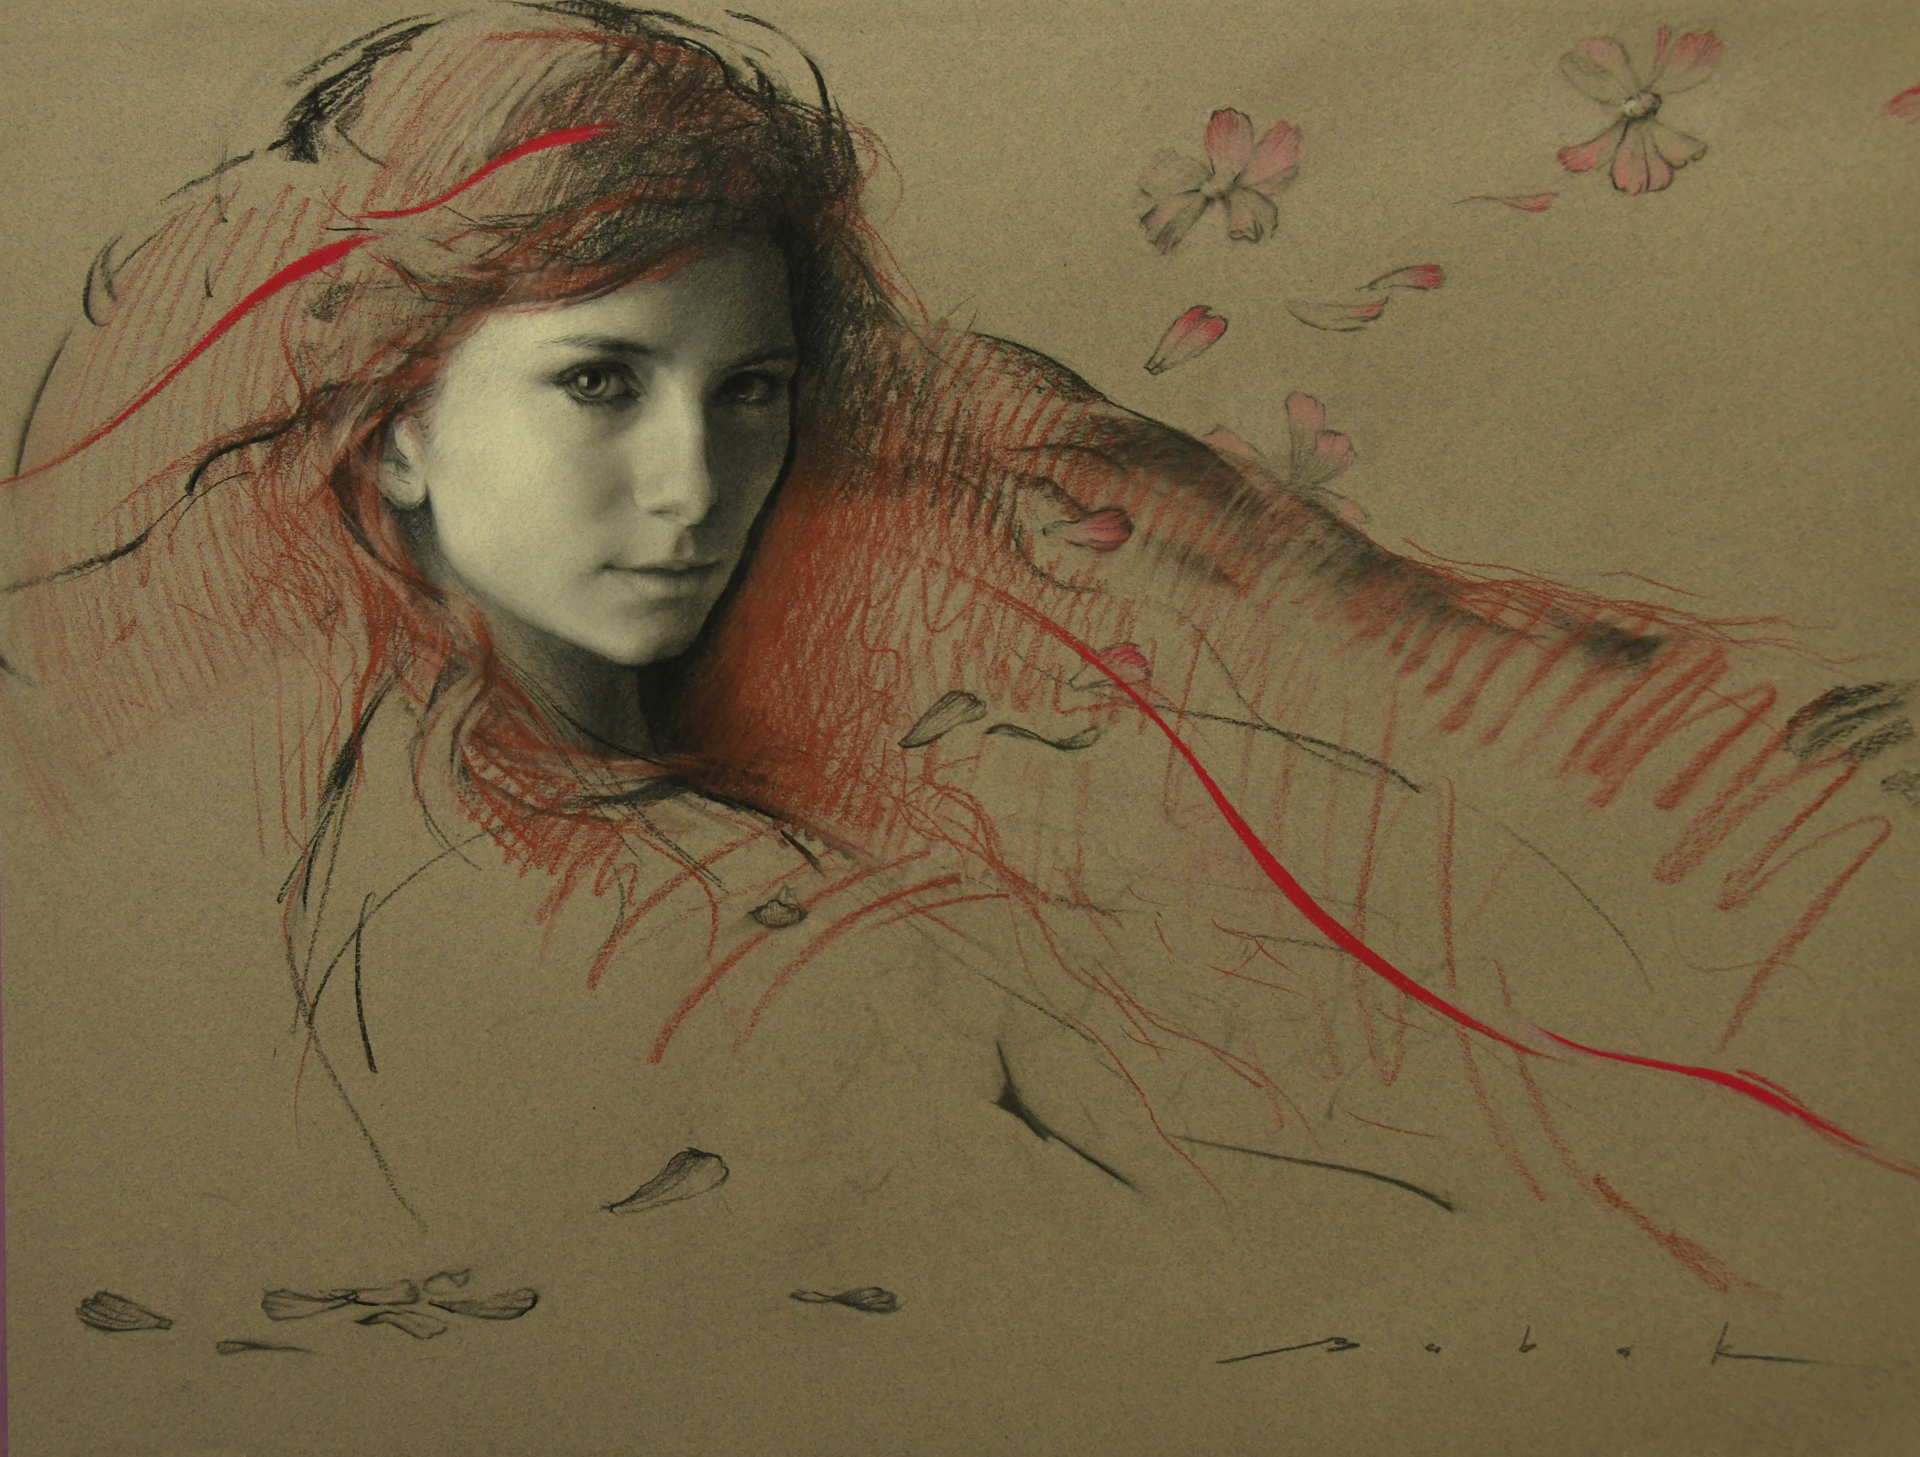 Red Line by Olena Babak